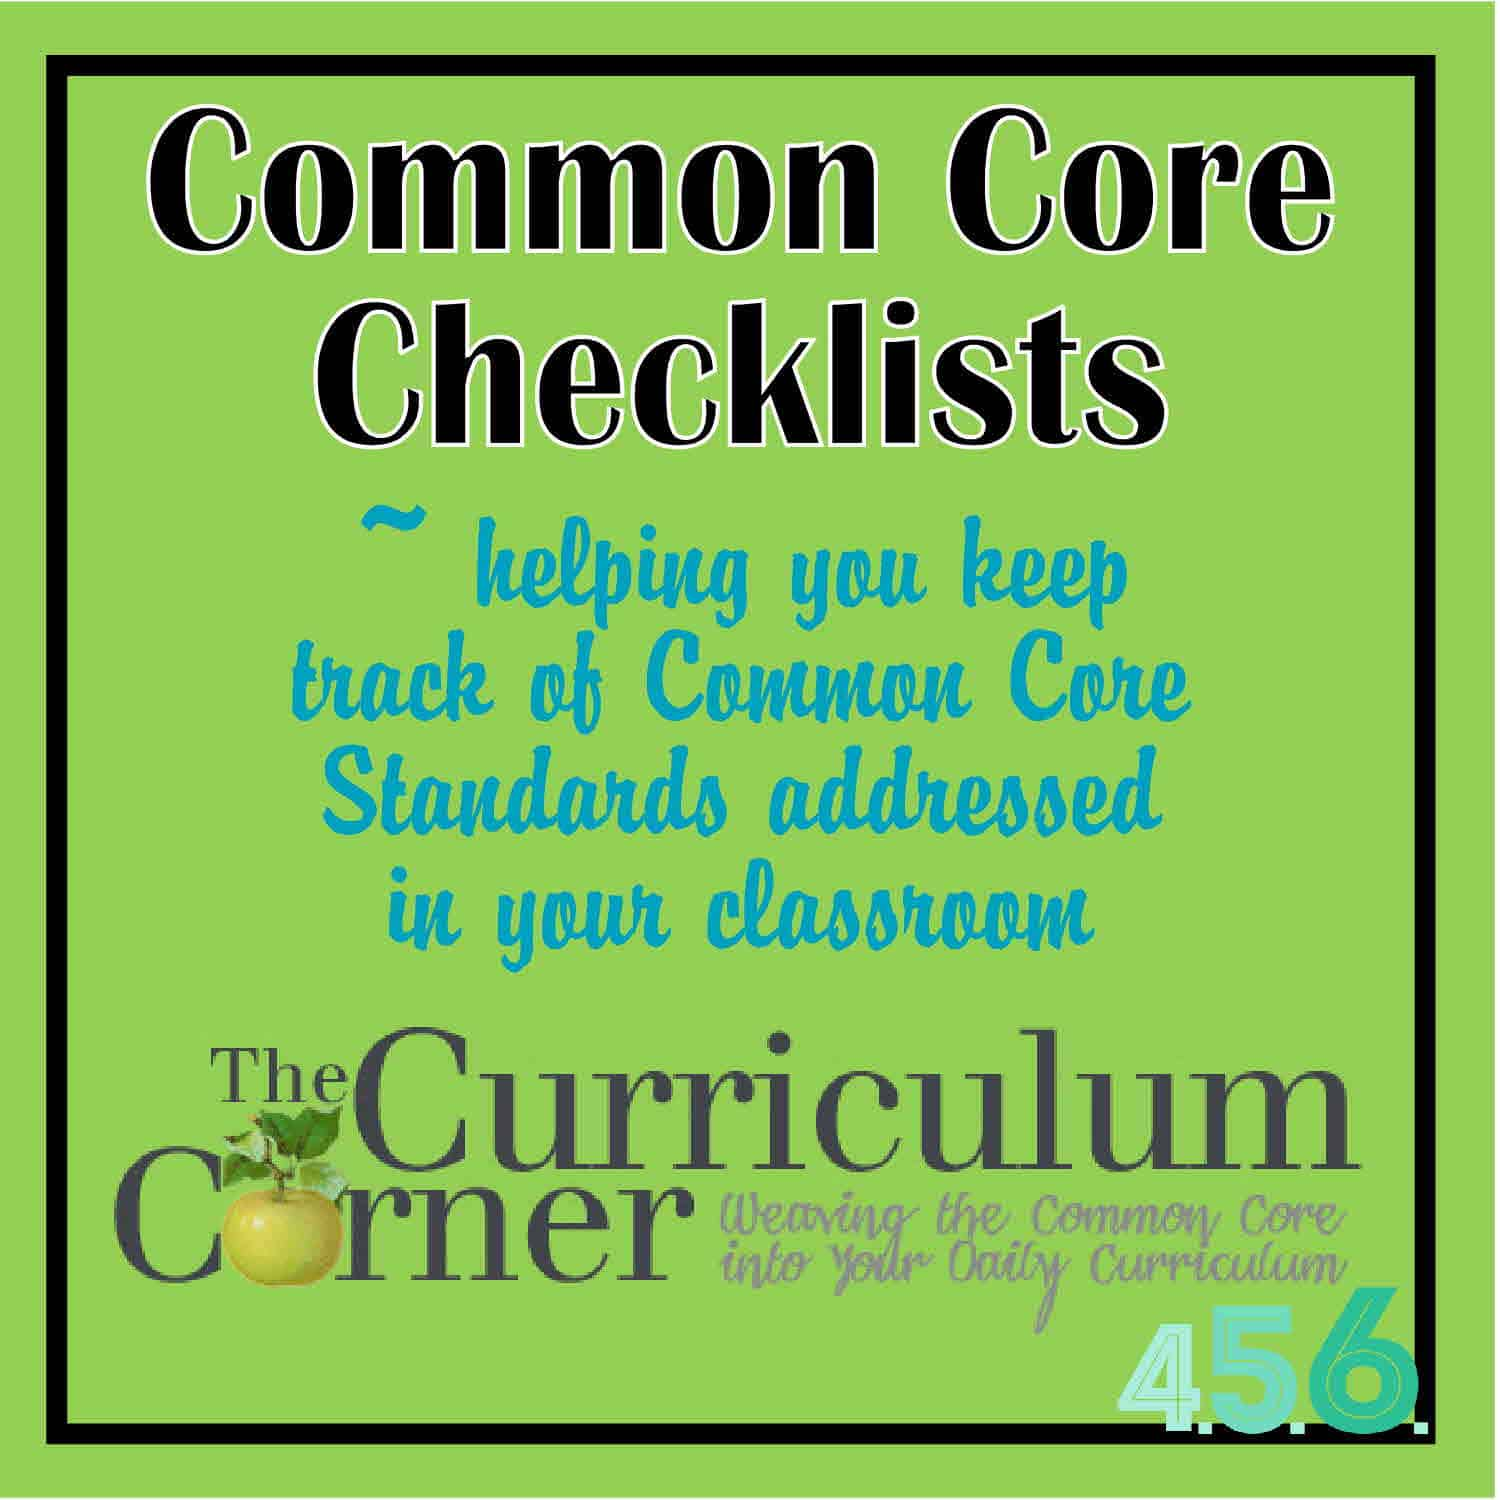 Worksheets Common Core Math Worksheets 8th Grade 4th 5th and 6th grade common core checklists by the curriculum state standards checklists